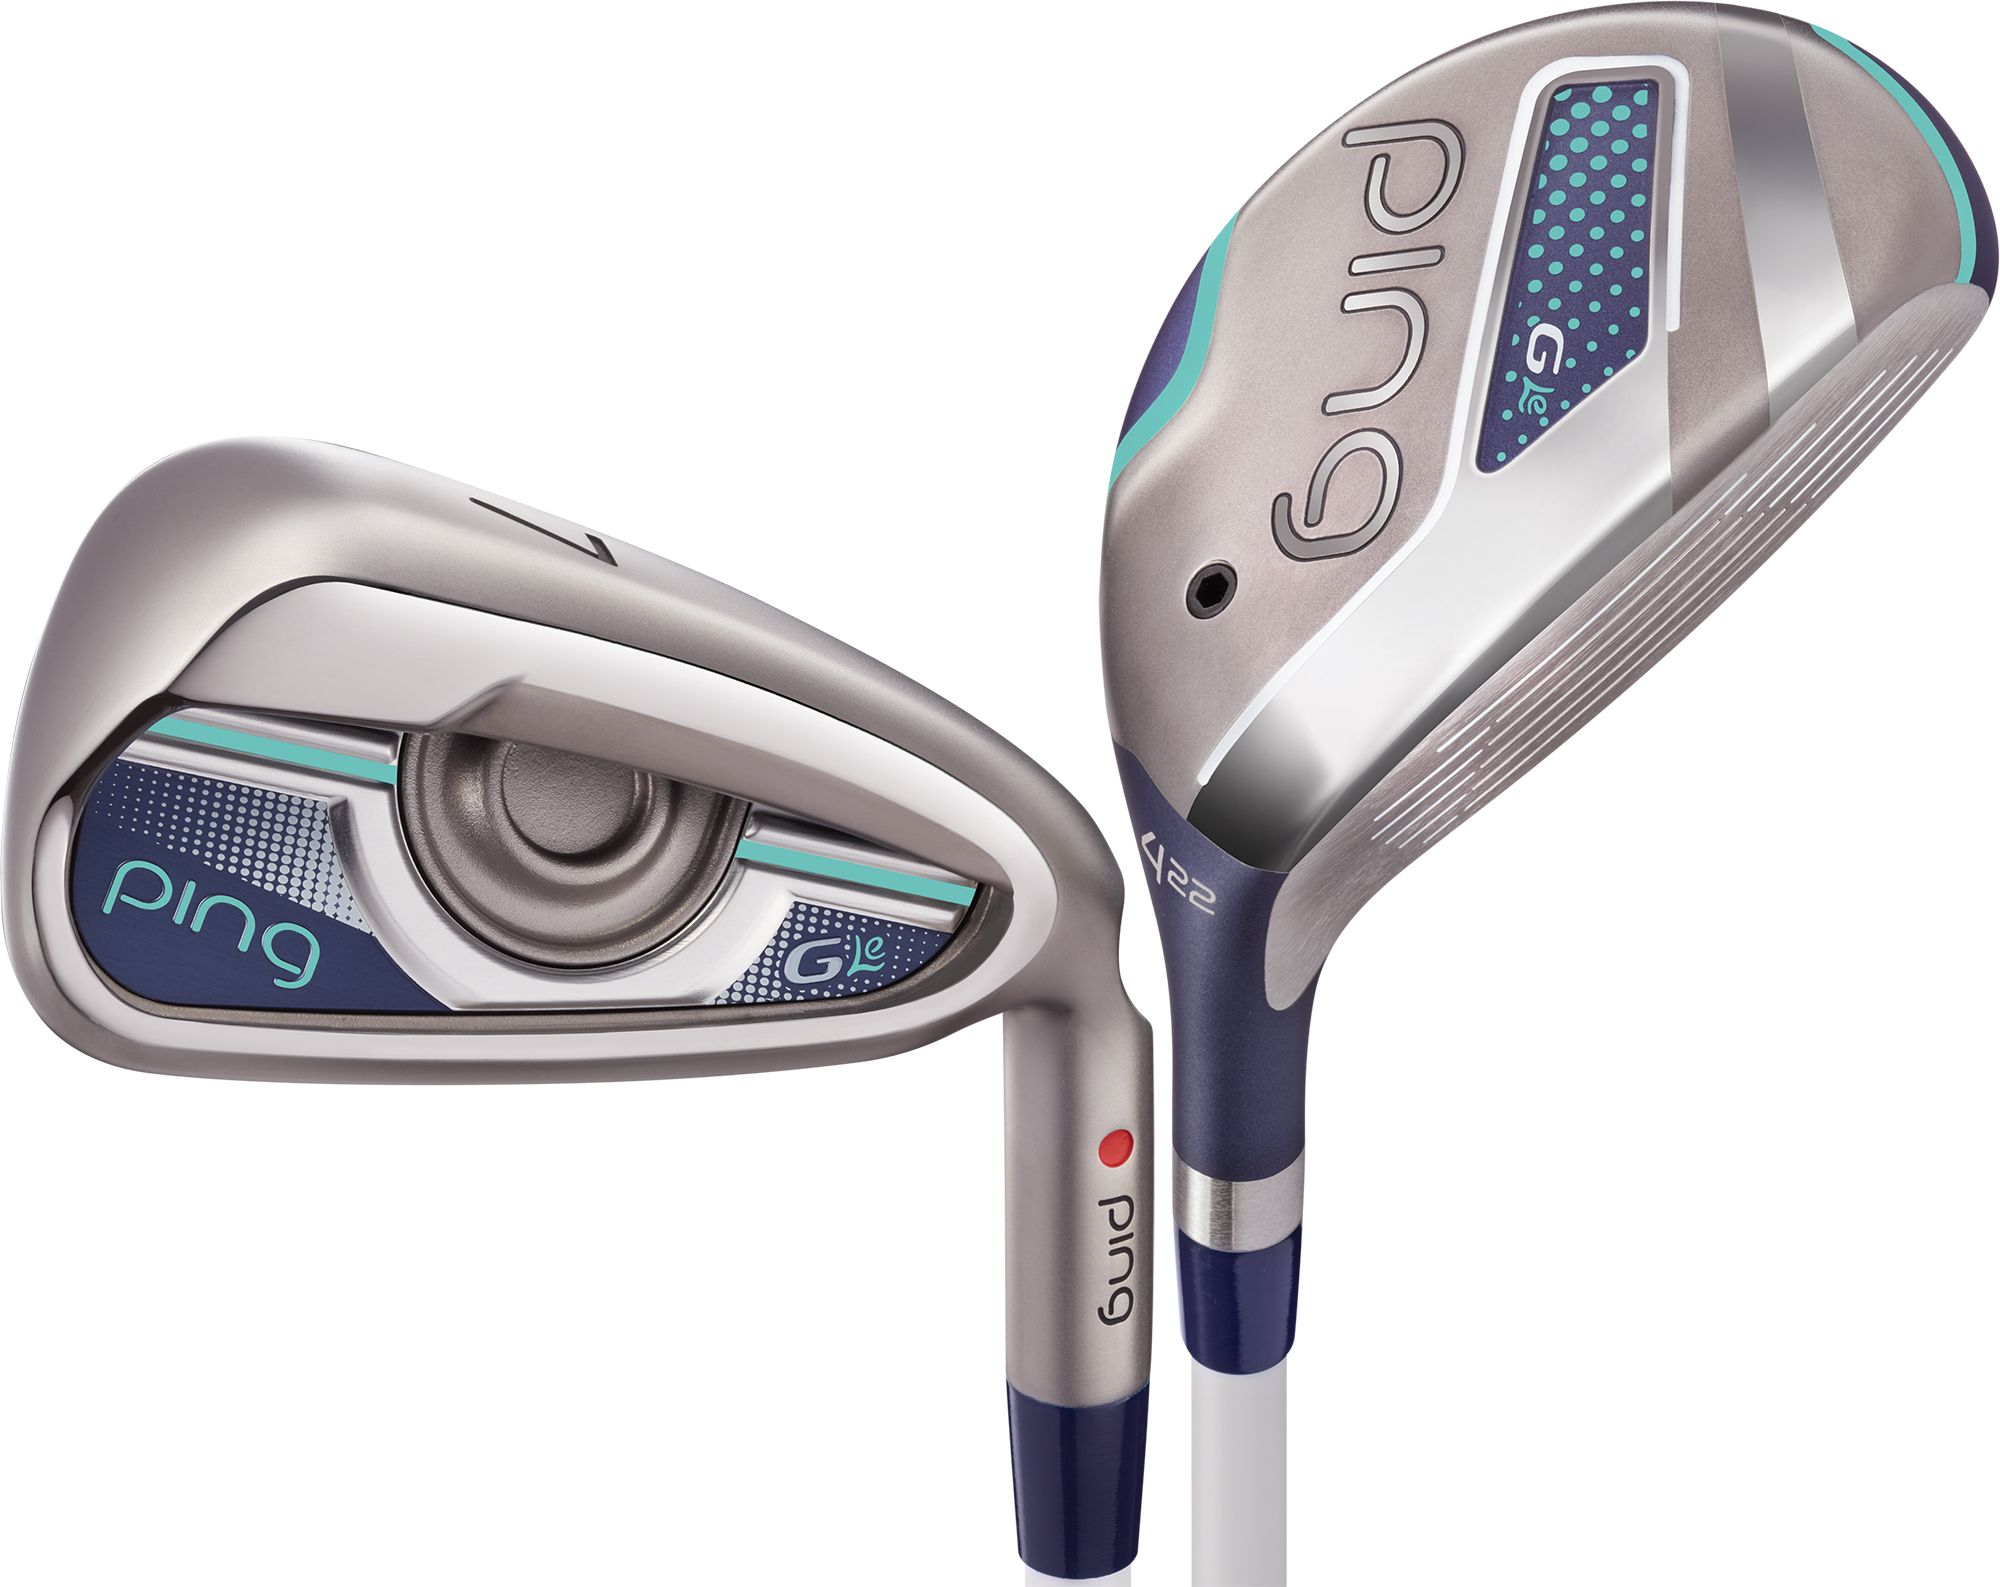 Ping irons dicks sporting goods product image ping g le hybridirons graphite nvjuhfo Image collections